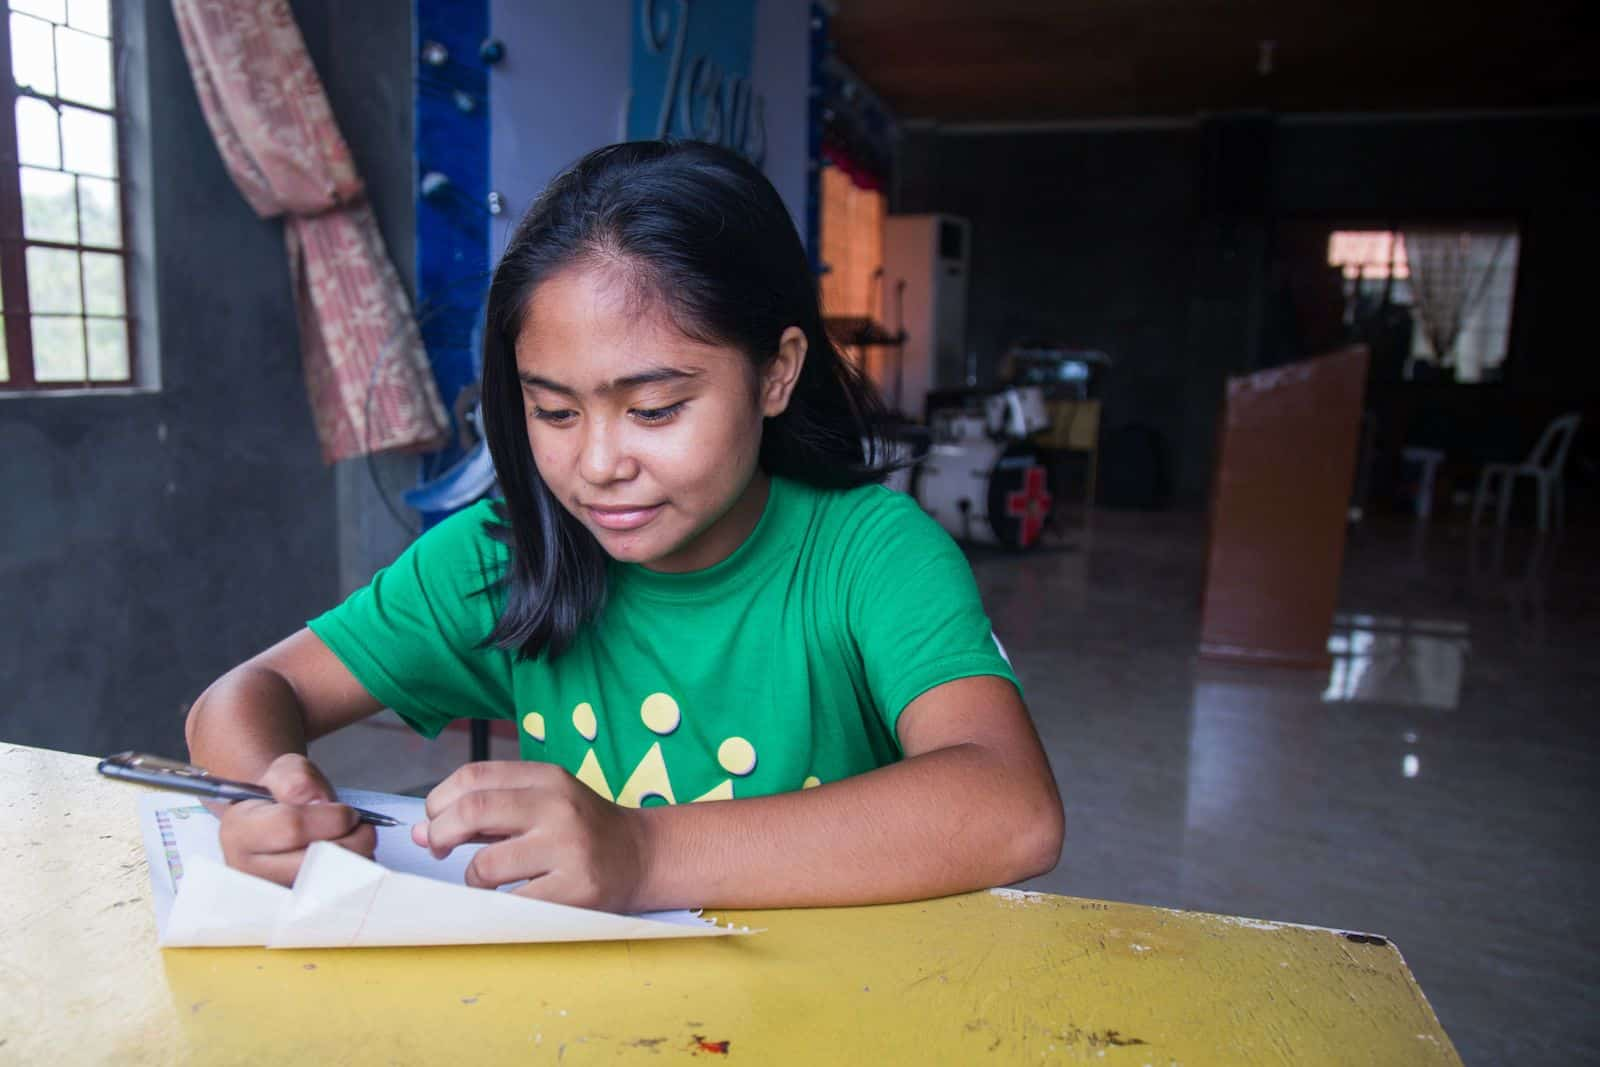 A girl in a green T-shirt sits at a table inside of a church, writing a letter.